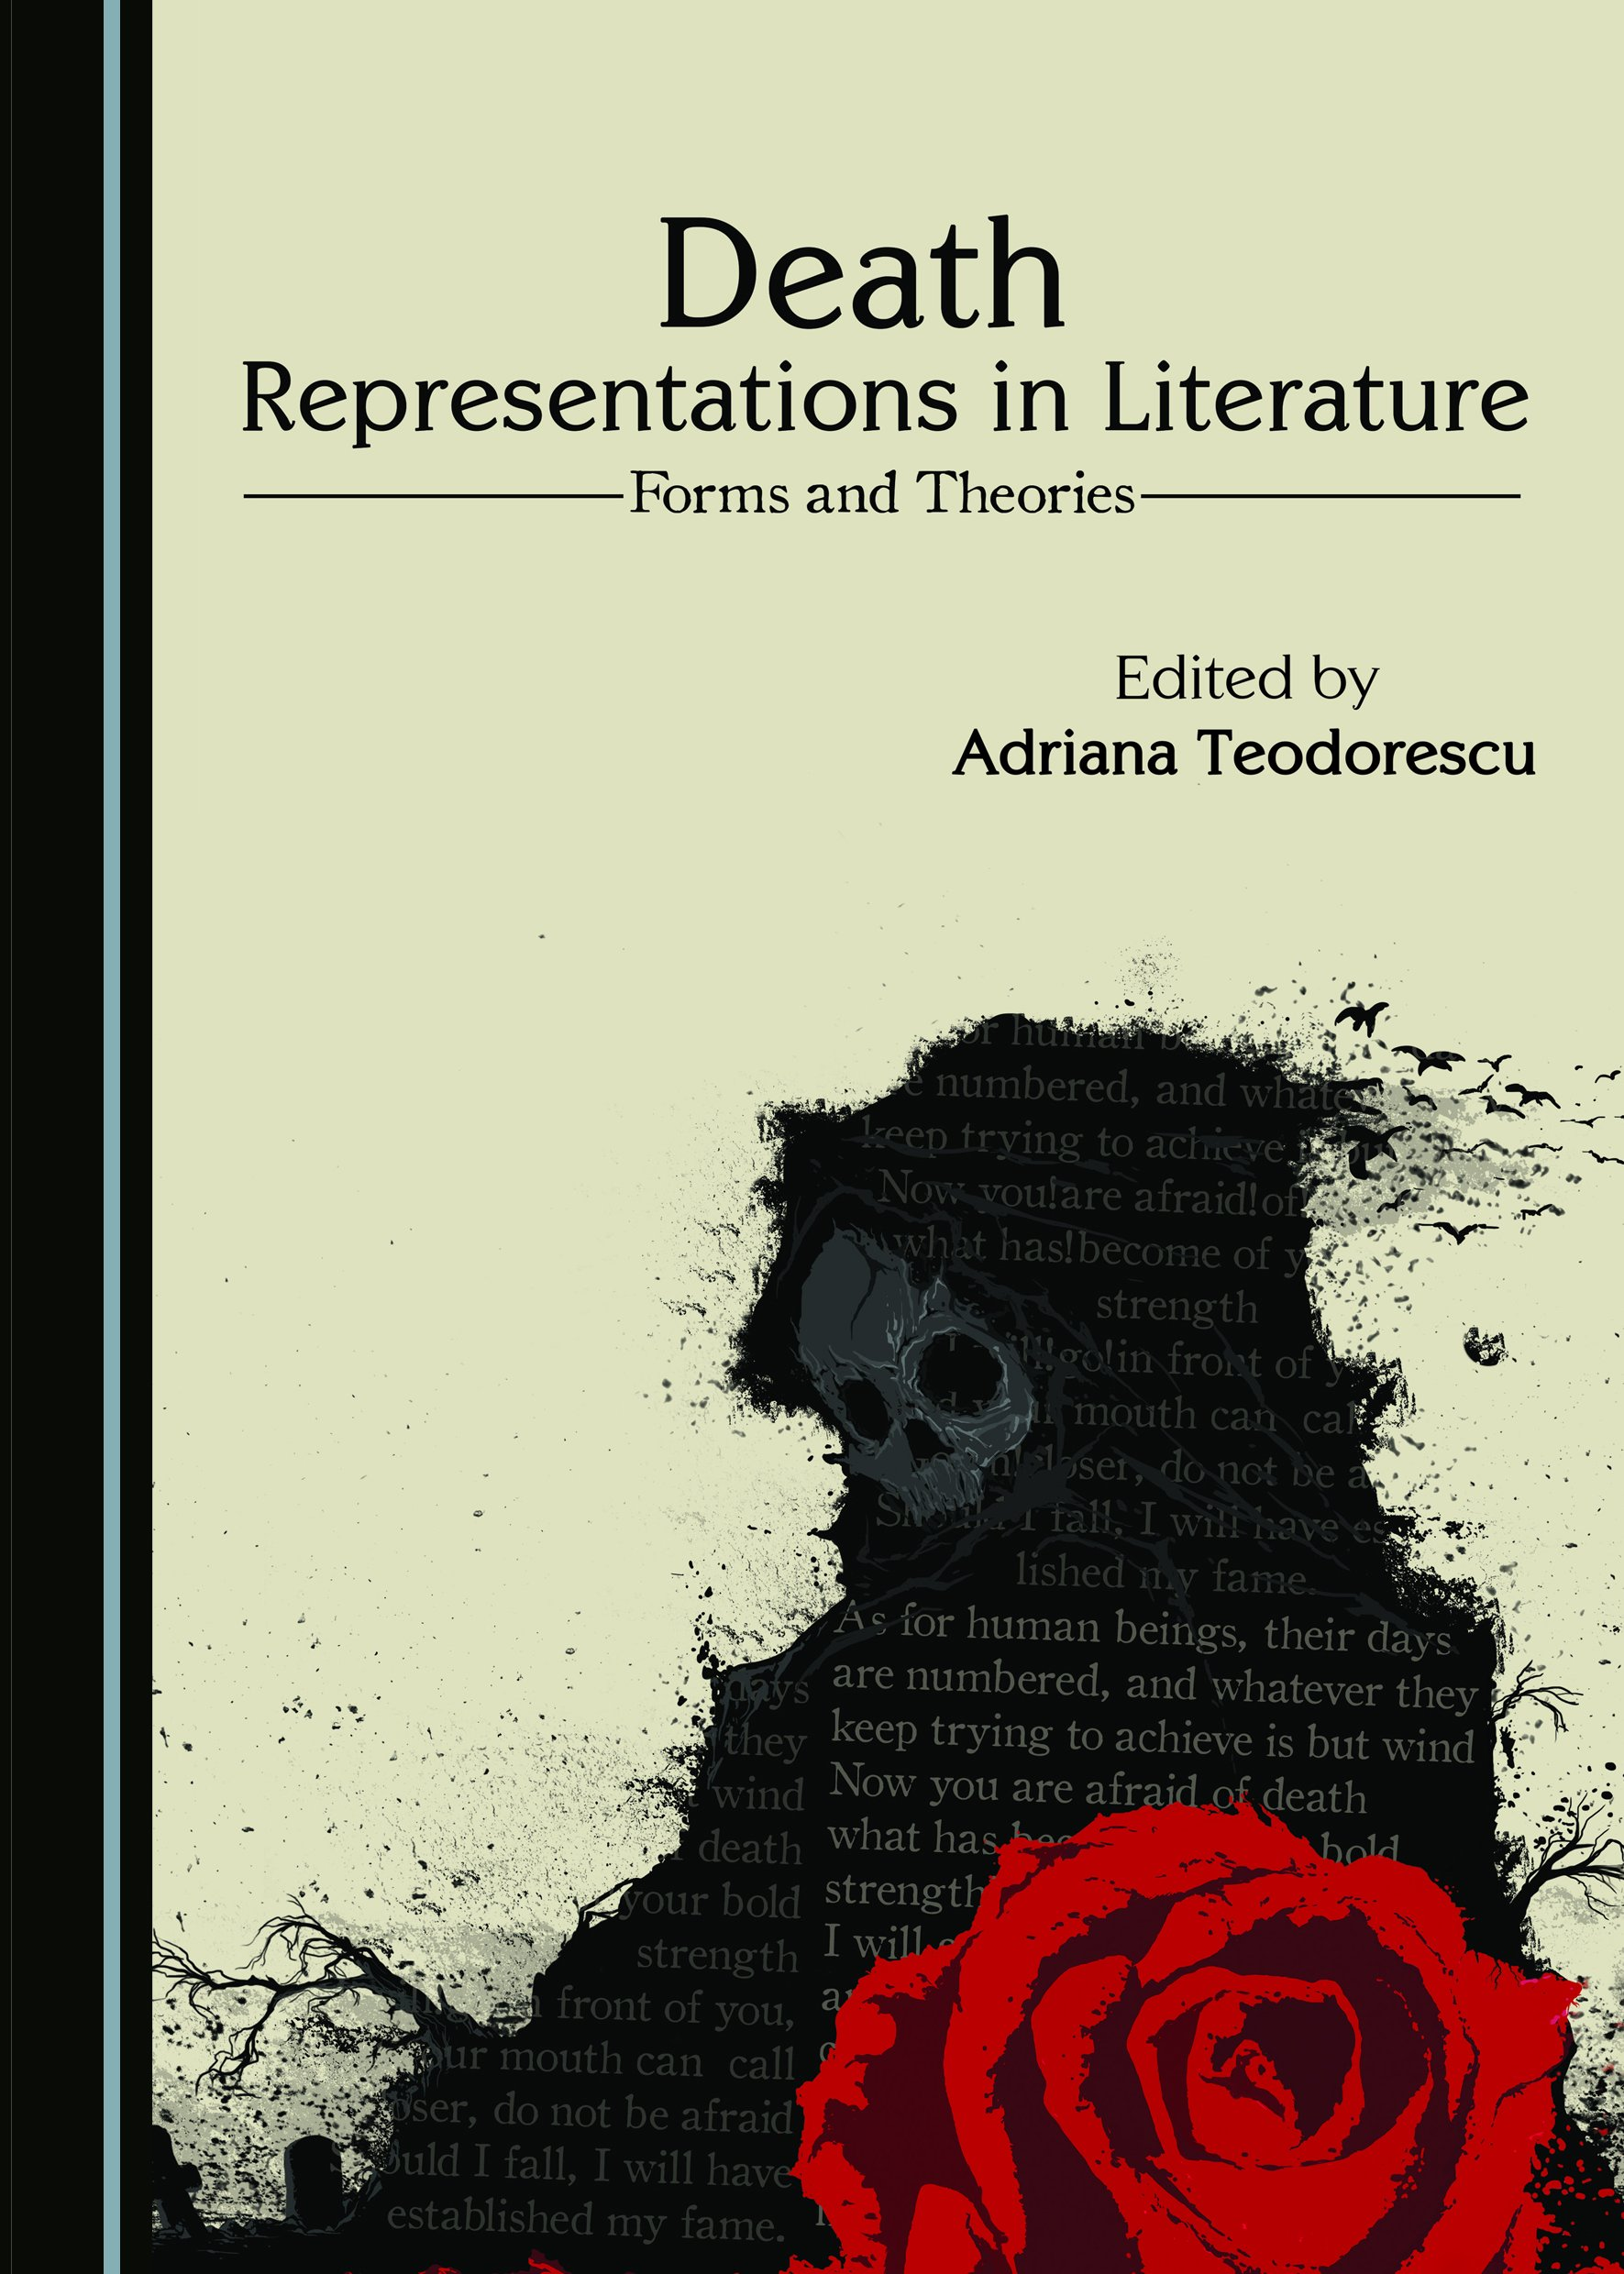 Death Representations in Literature: Forms and Theories